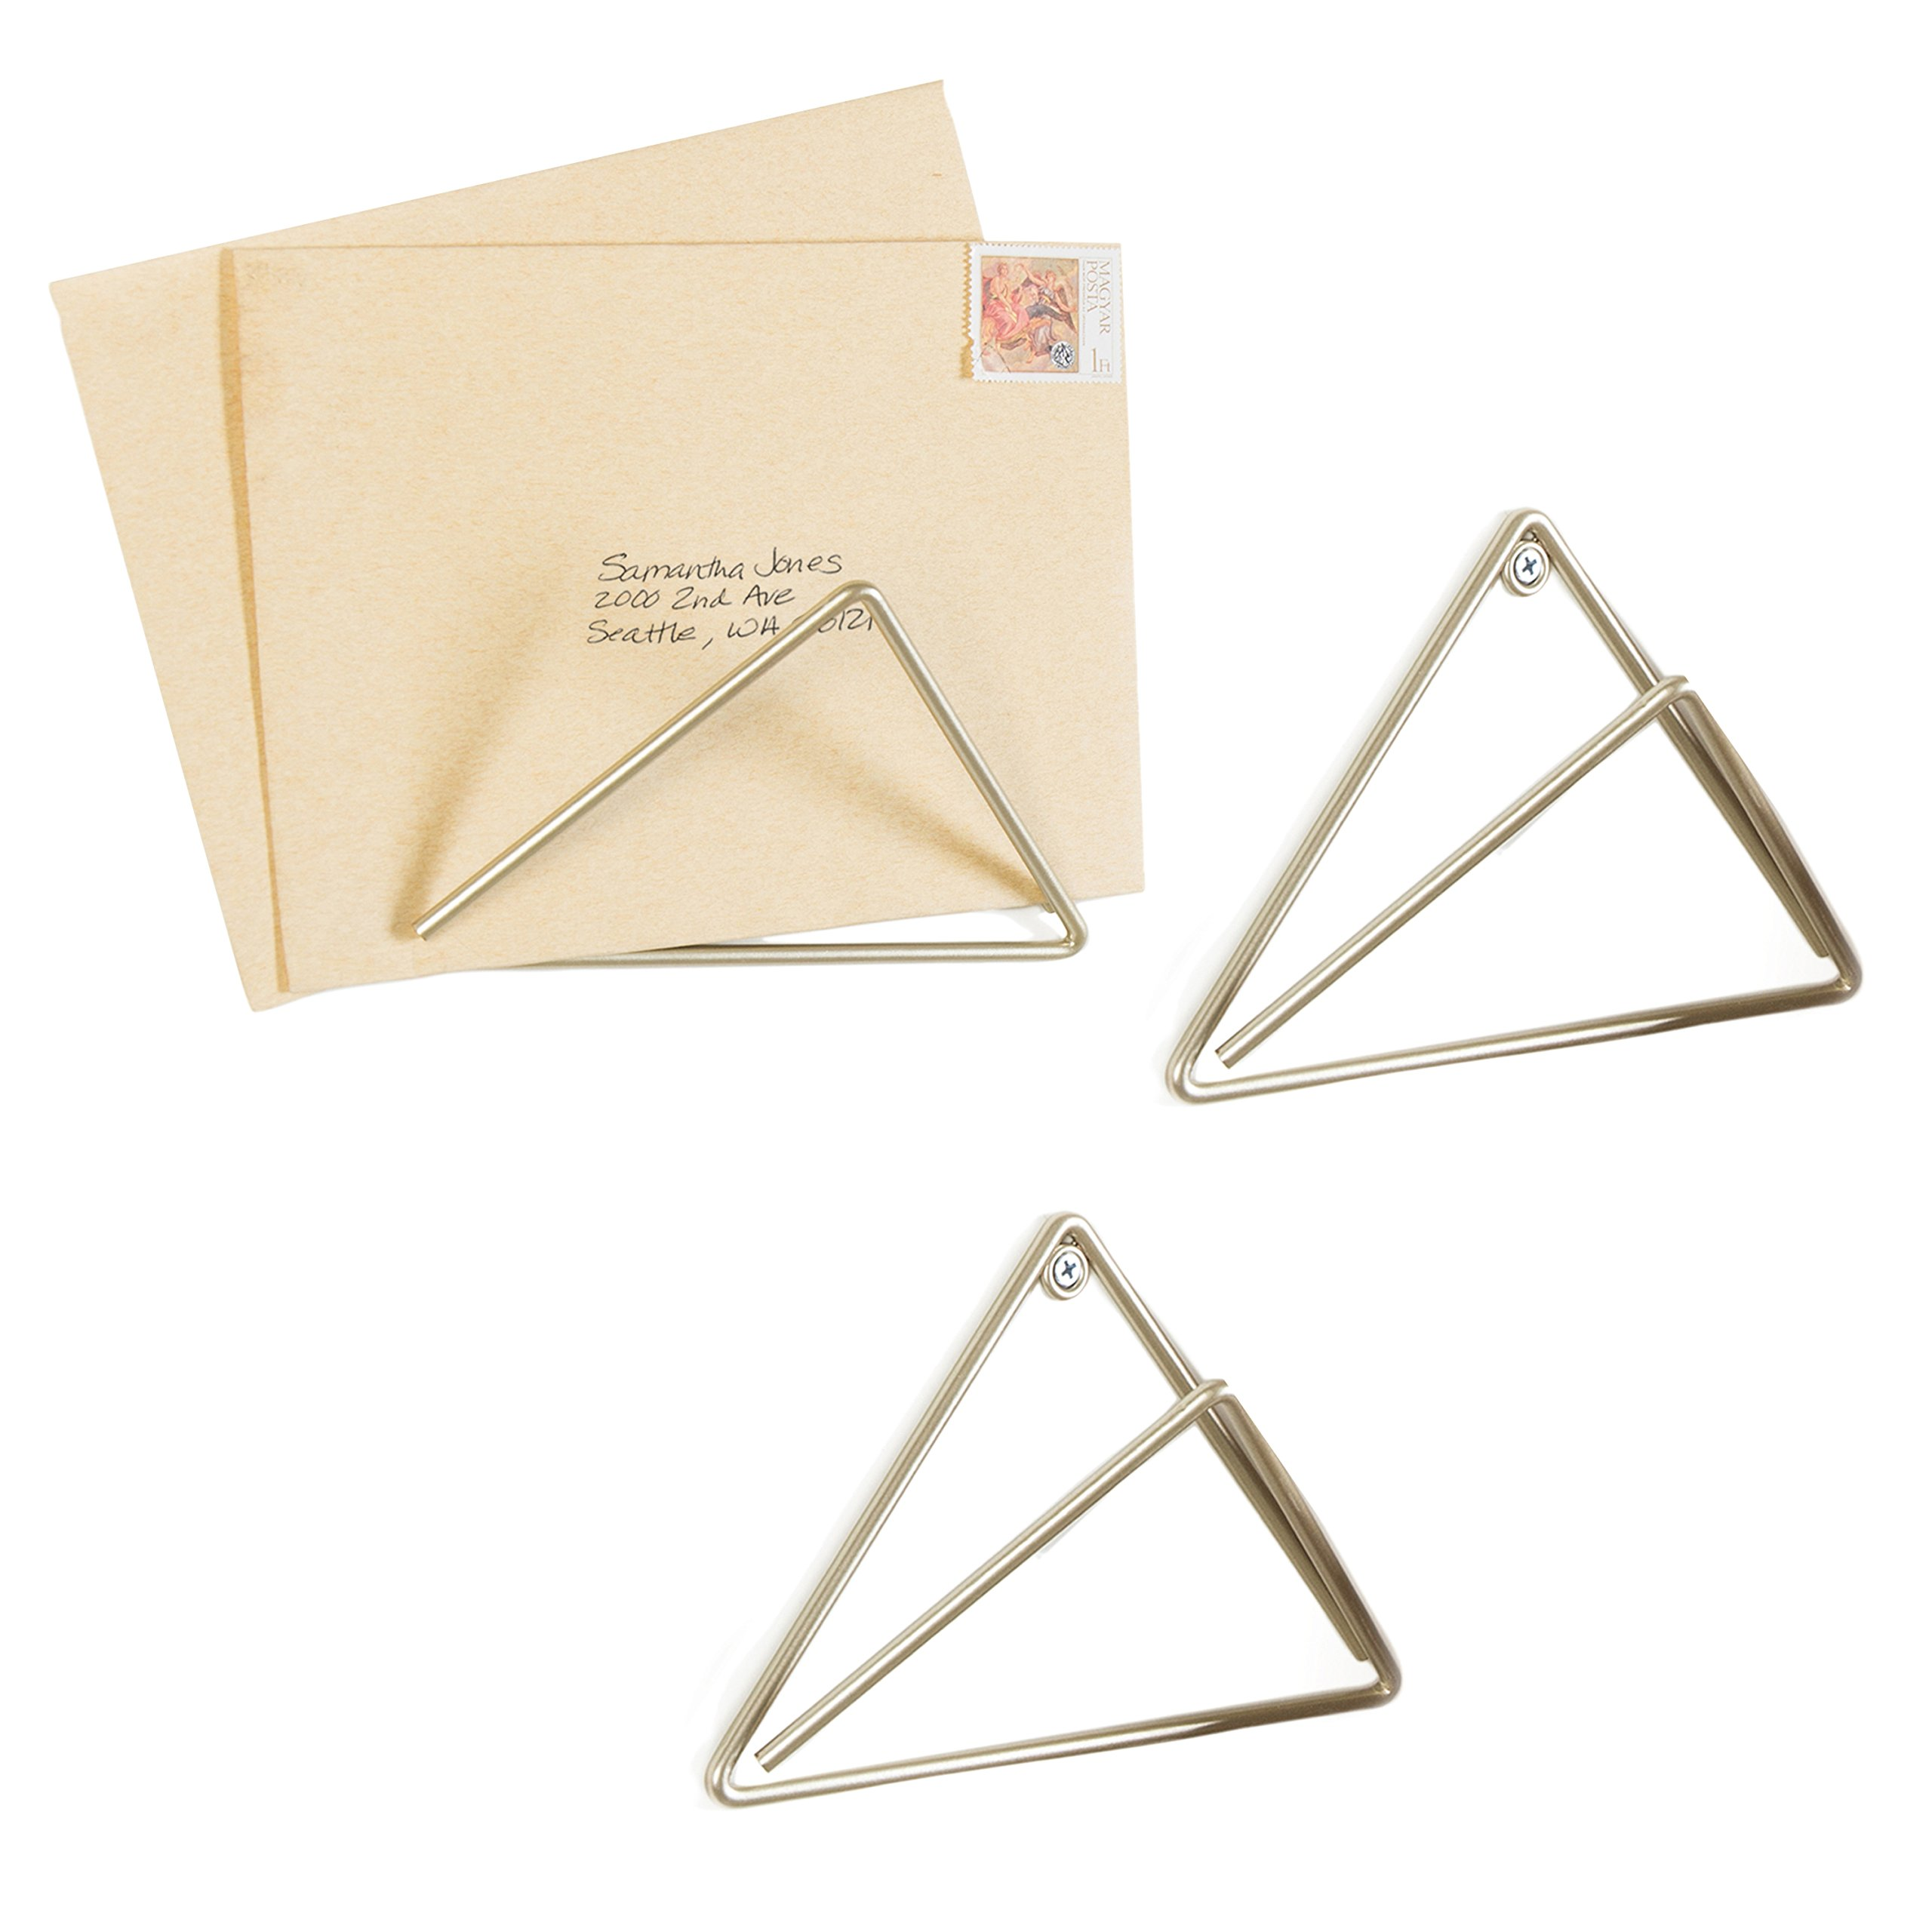 MyGift Set of 3 Gold-Tone Metal Wall-Mounted Triangular Letter Holders